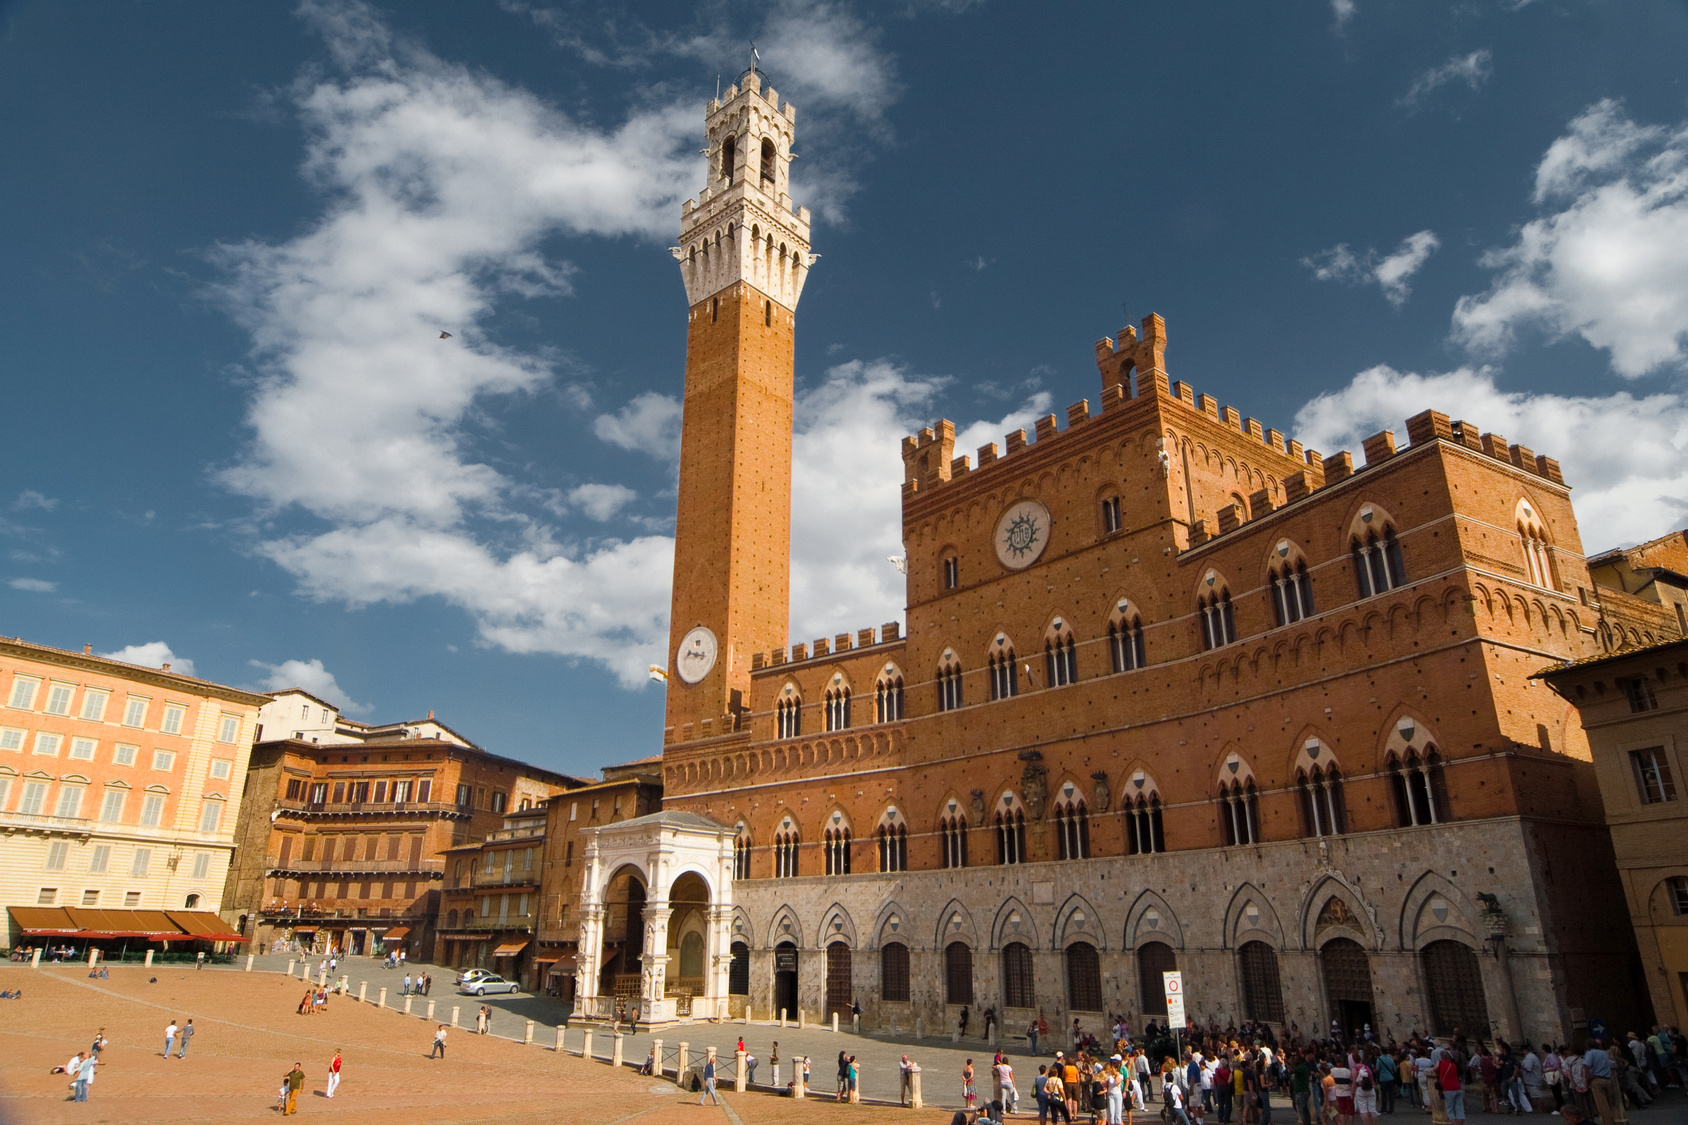 Torre del Mangia on Piazza del Campo in Siena